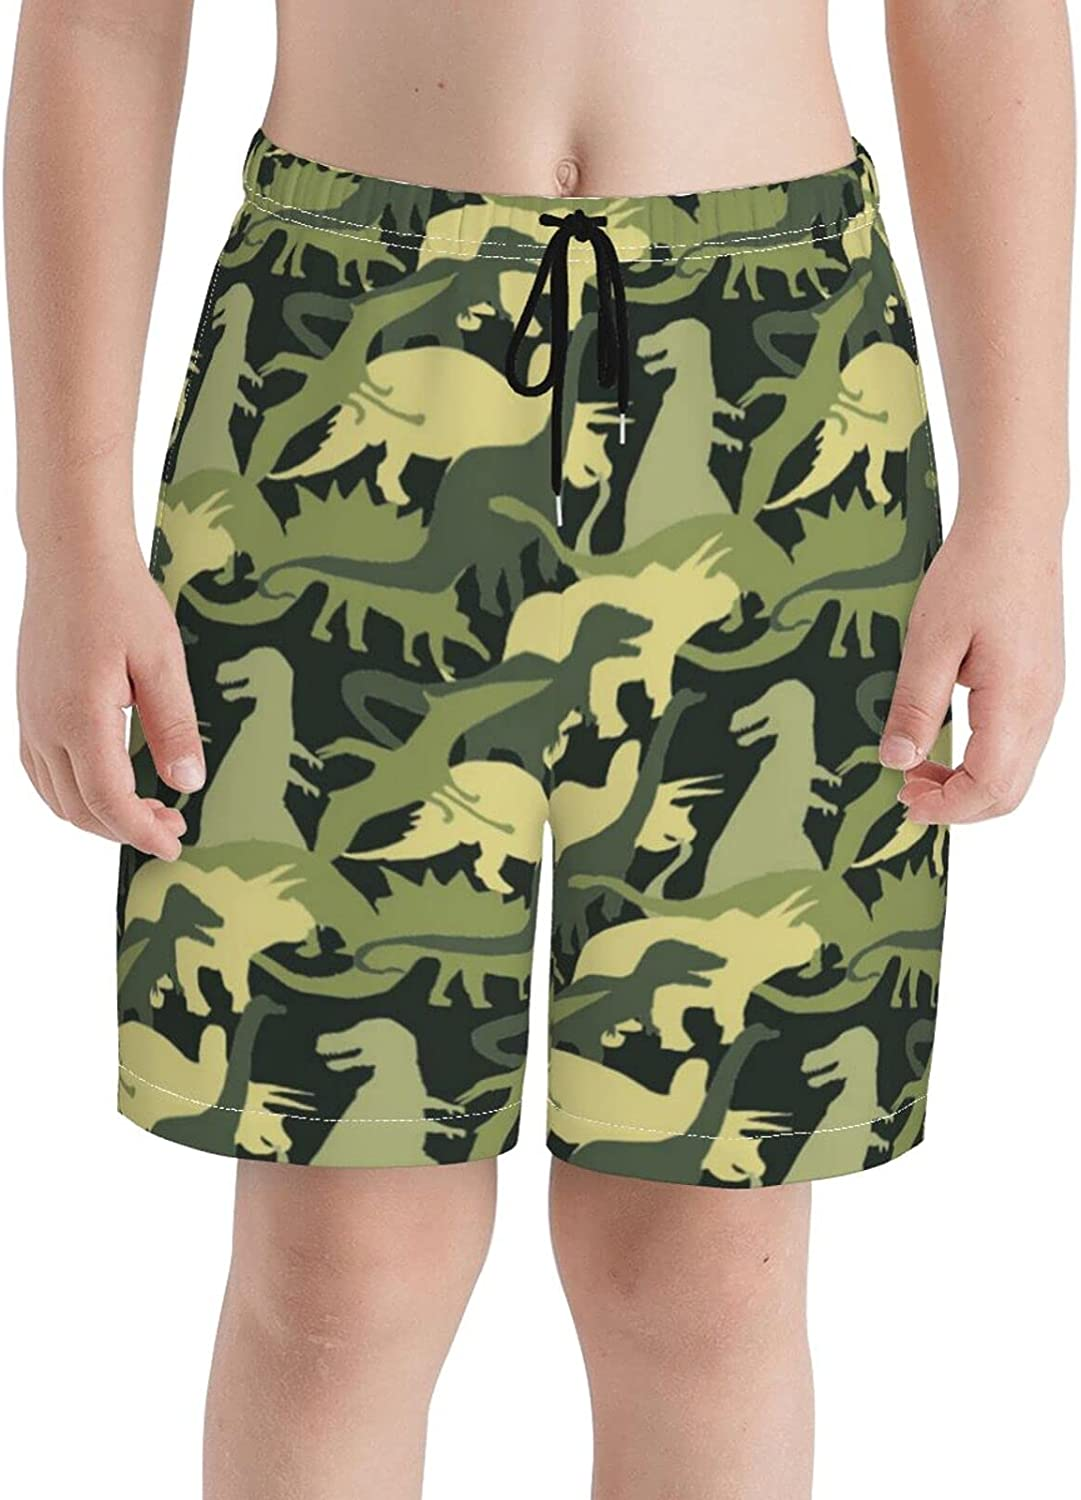 Camouflage Silhouette Boys Quick Dry Swim Trunks Youth Print Beach Surfing Board Shorts 7-20 Years